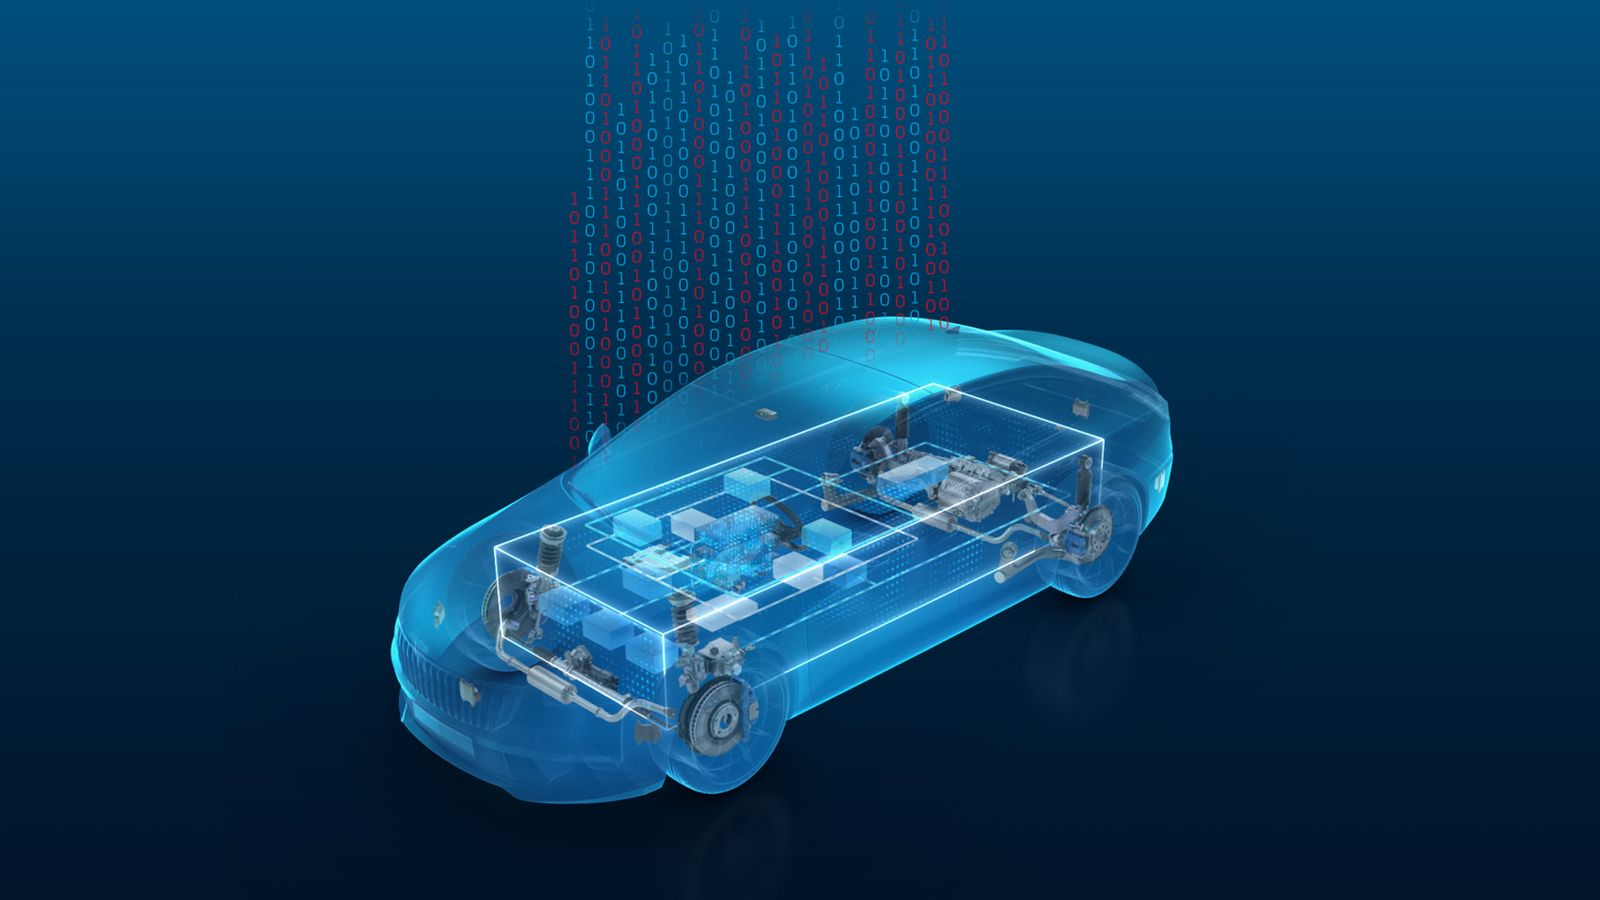 ZF_Software-defined-Car